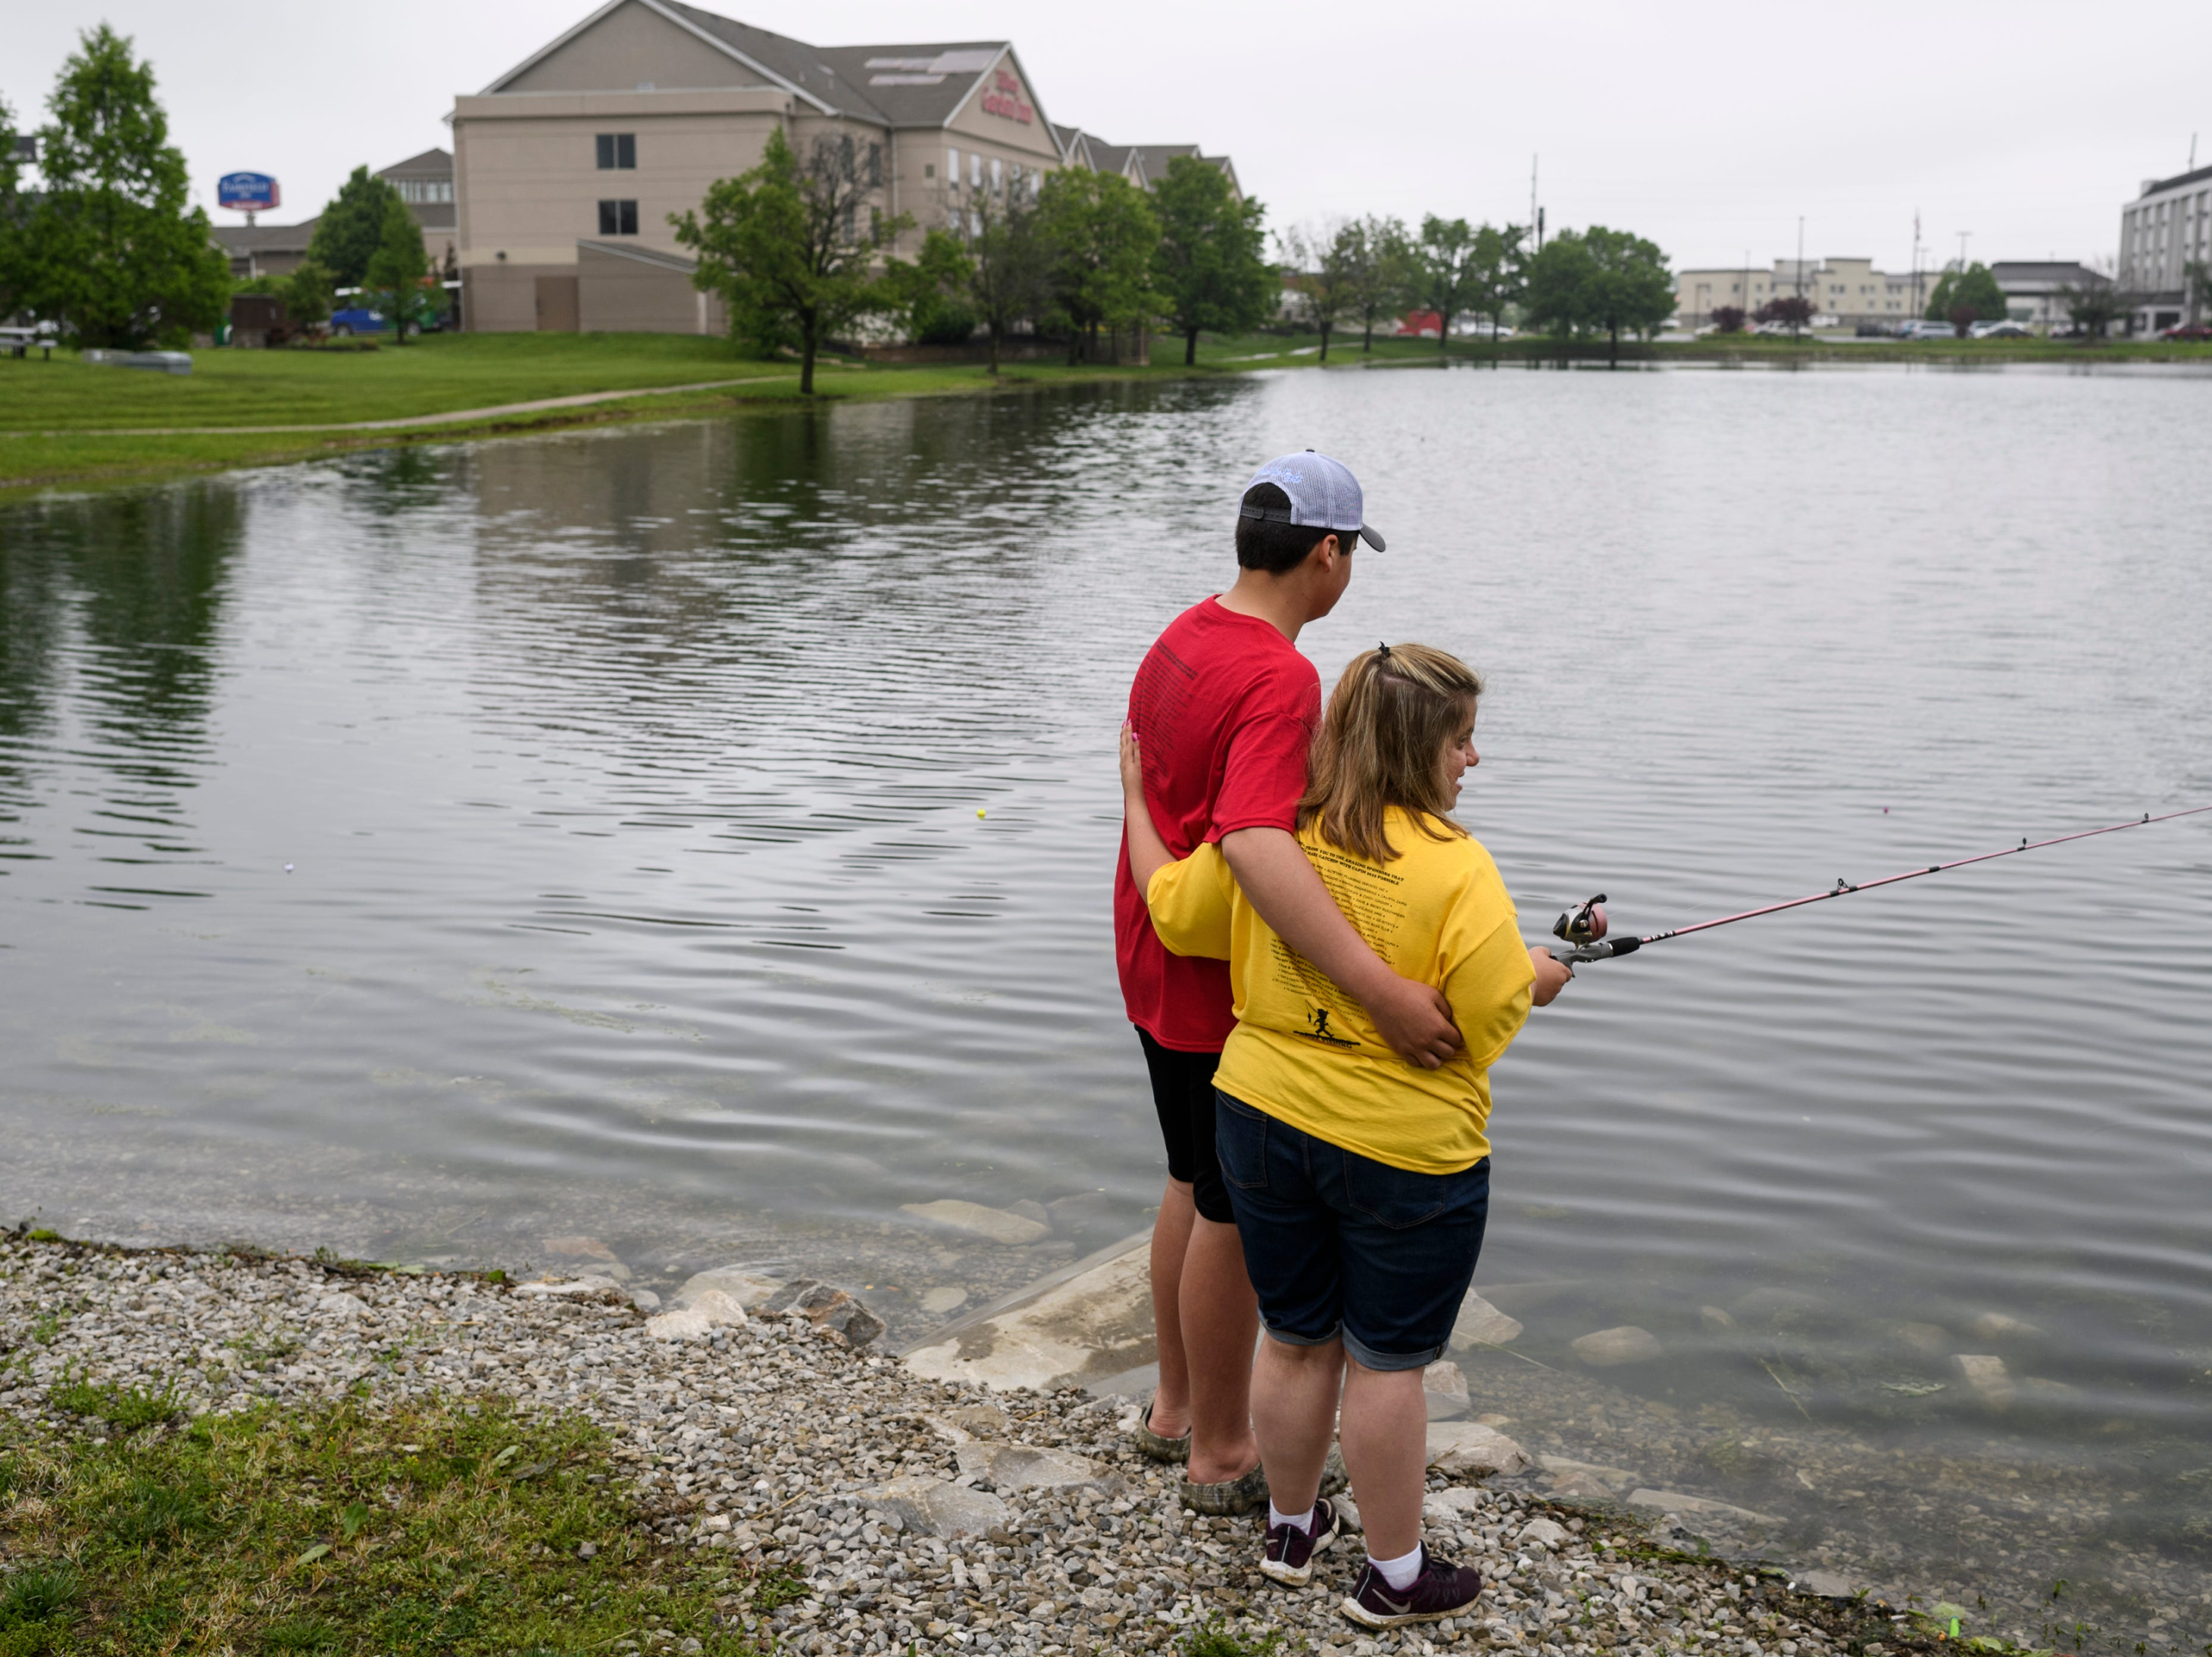 """Connor King, a student volunteer from Mt. Vernon High School, embraces Kylee Ricketts, right, his girlfriend Kelcey Rickett's sister, as they fish together during the 12th annual """"Catchin' with Capin"""" event at Eagle Lake in Evansville, Ind., Friday, May 3, 2019. King is a sponsored competitive fisherman who often competes in catfishing tournaments."""